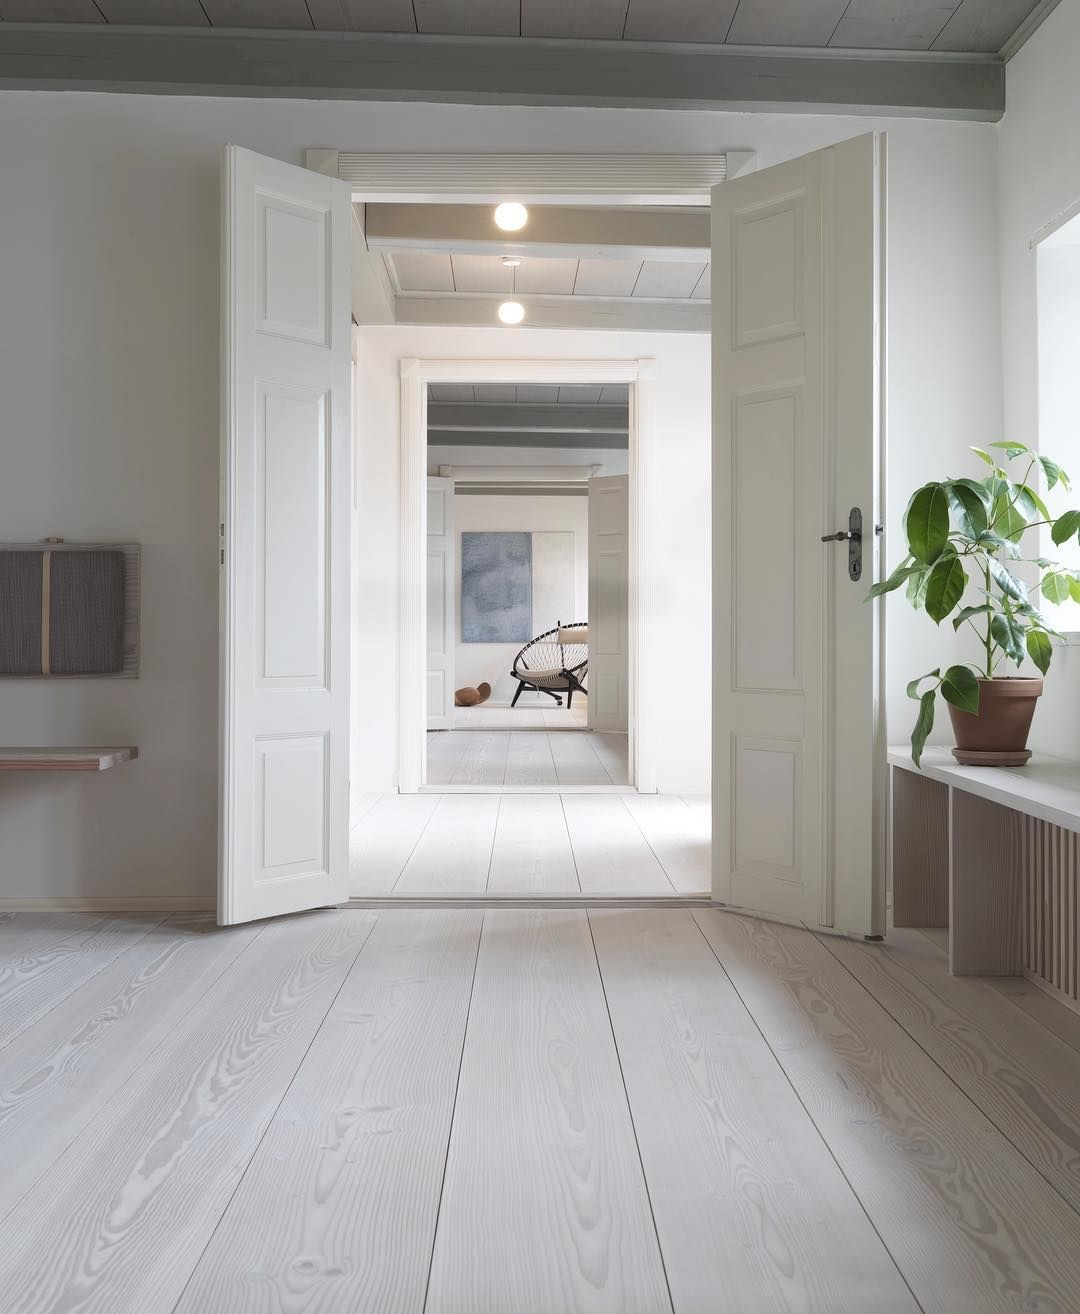 Dinesen Country Home | Douglas | Pinterest | Interiors, Walls and ...